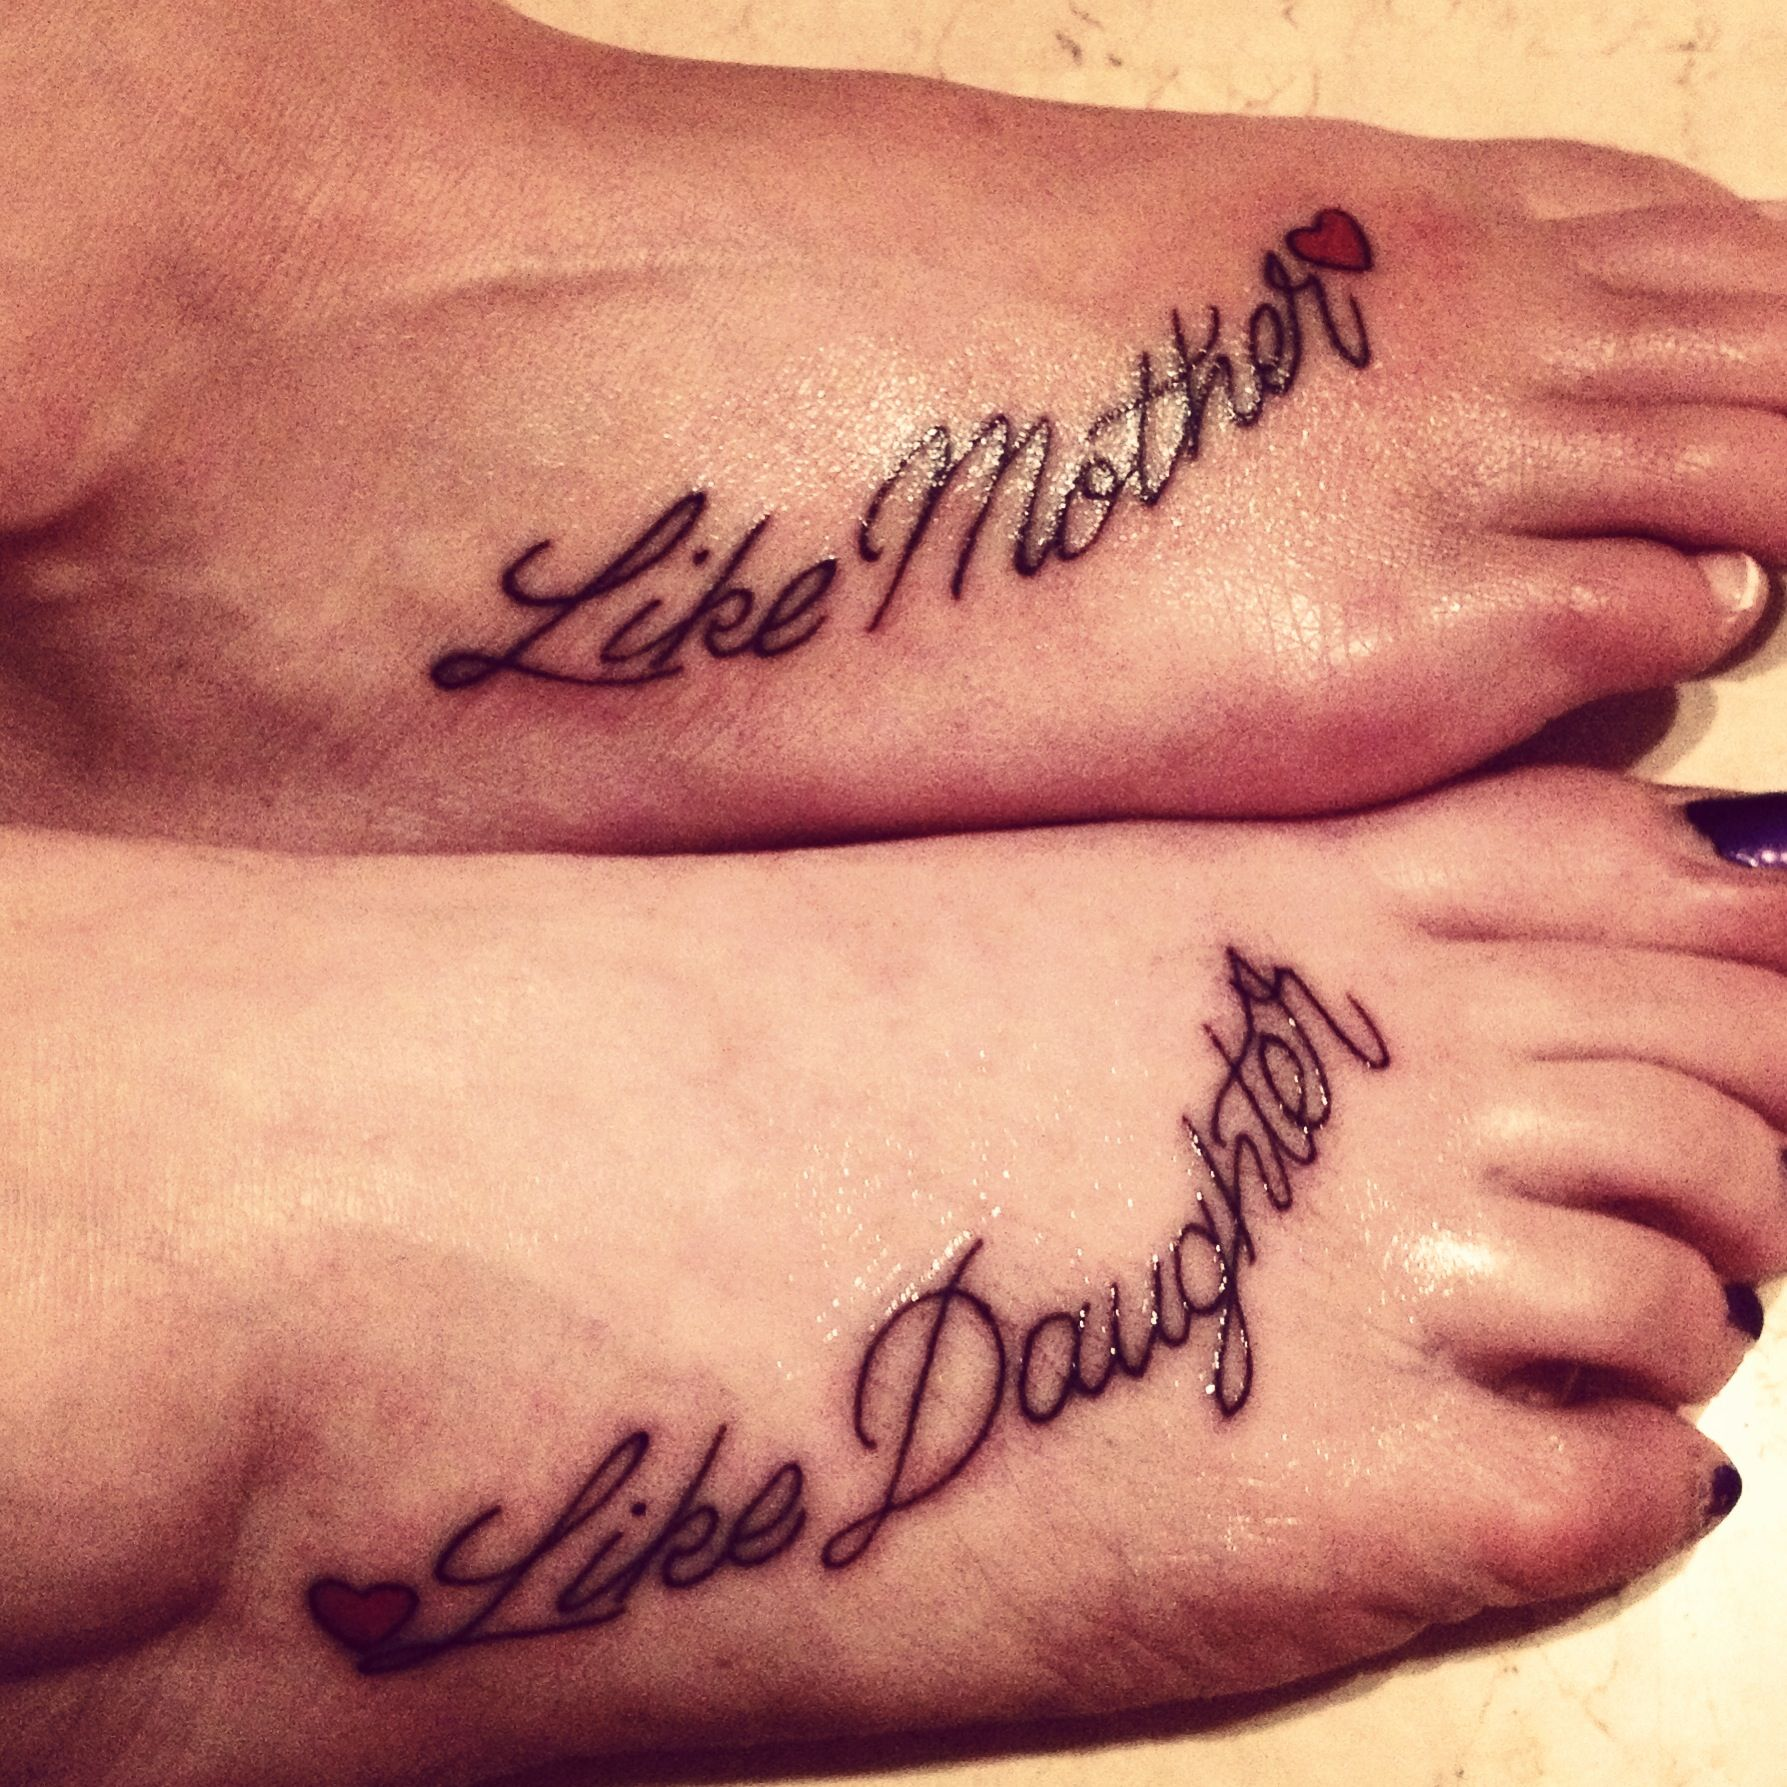 8 Of The Most Inspiring Tattoos For Moms: Mother Daughter Tattoo